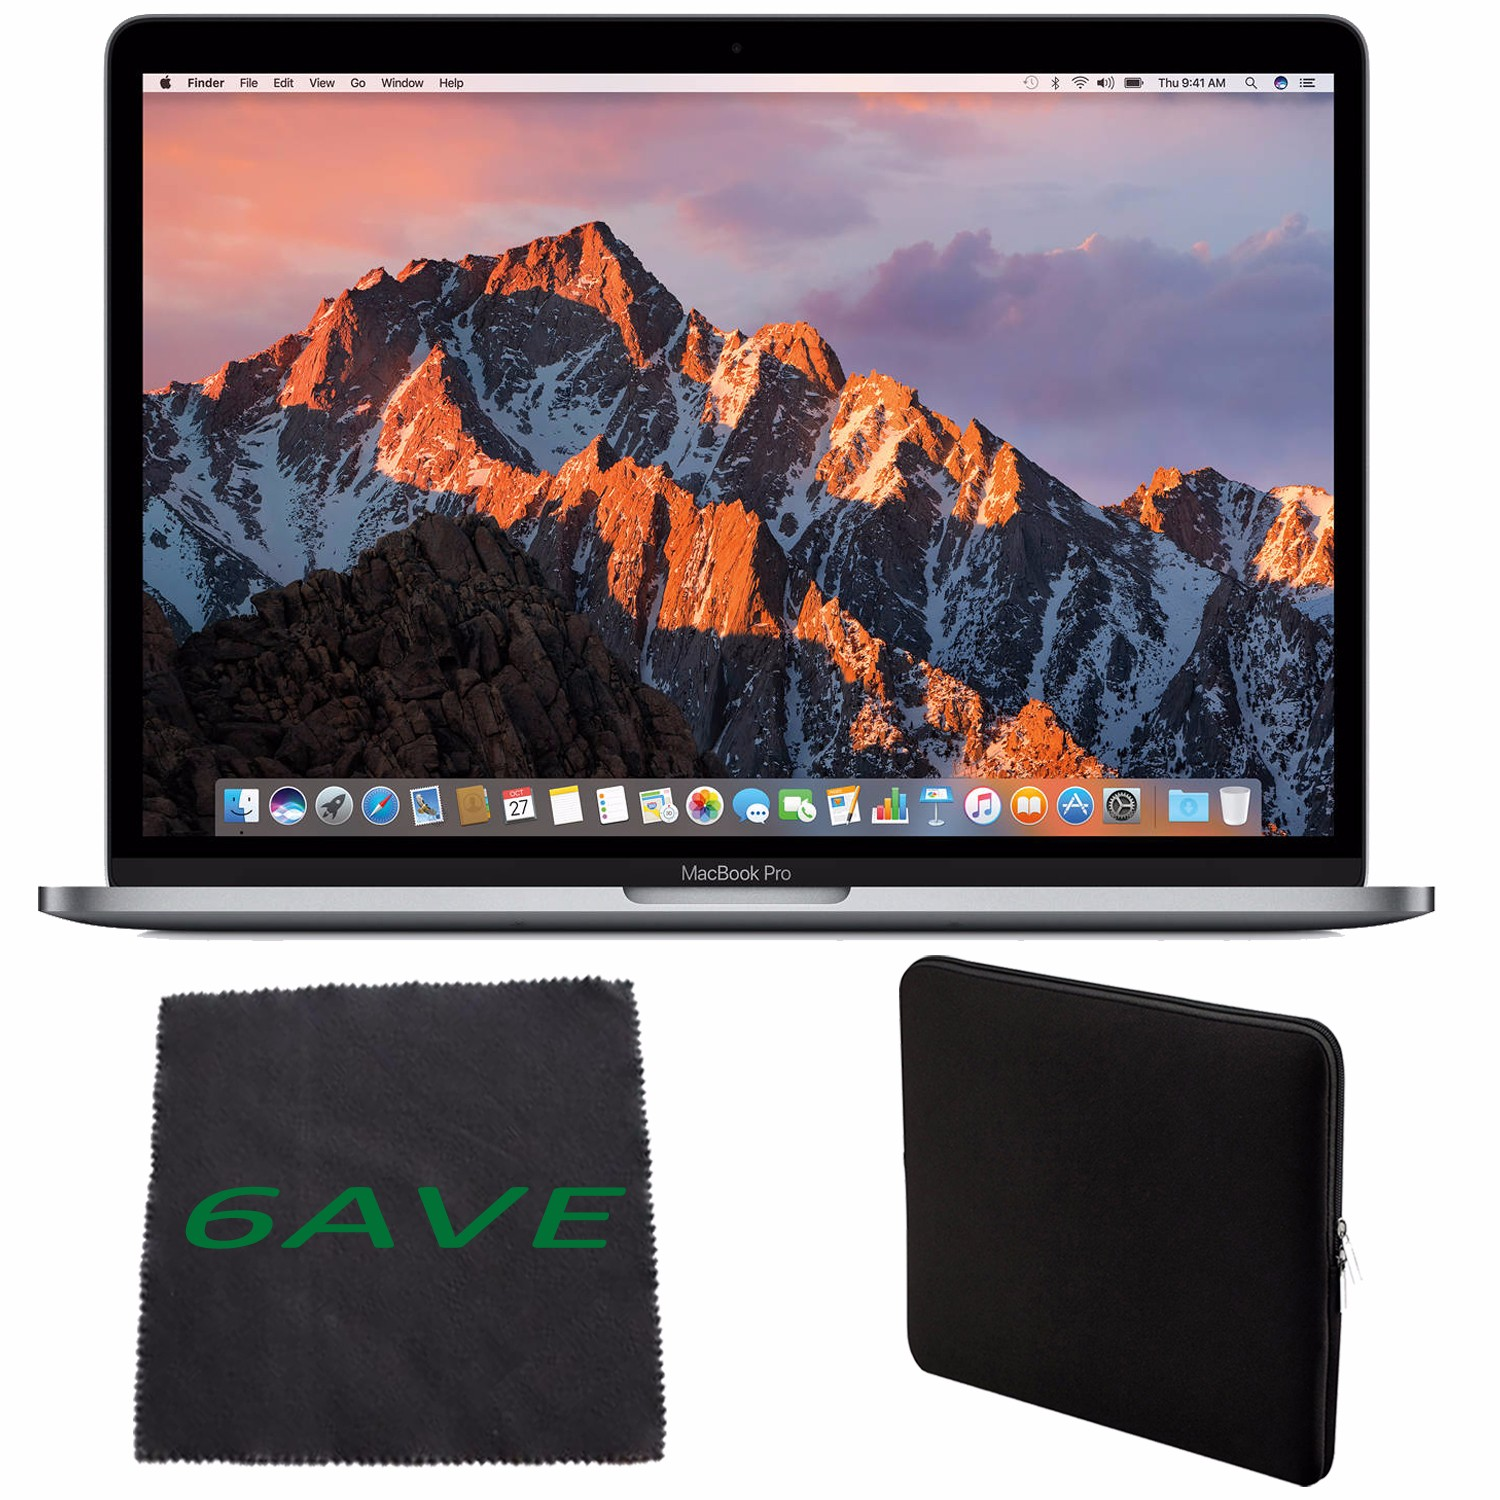 Apple MacBook Pro MNQF2LL/A 13-inch Laptop with Touch Bar (2.9GHz dual-core Intel Core i5, 512GB Retina Display), Space Gray Spanish Keyboard + Padded Case For Macbook + MicroFiber Cloth Bundle